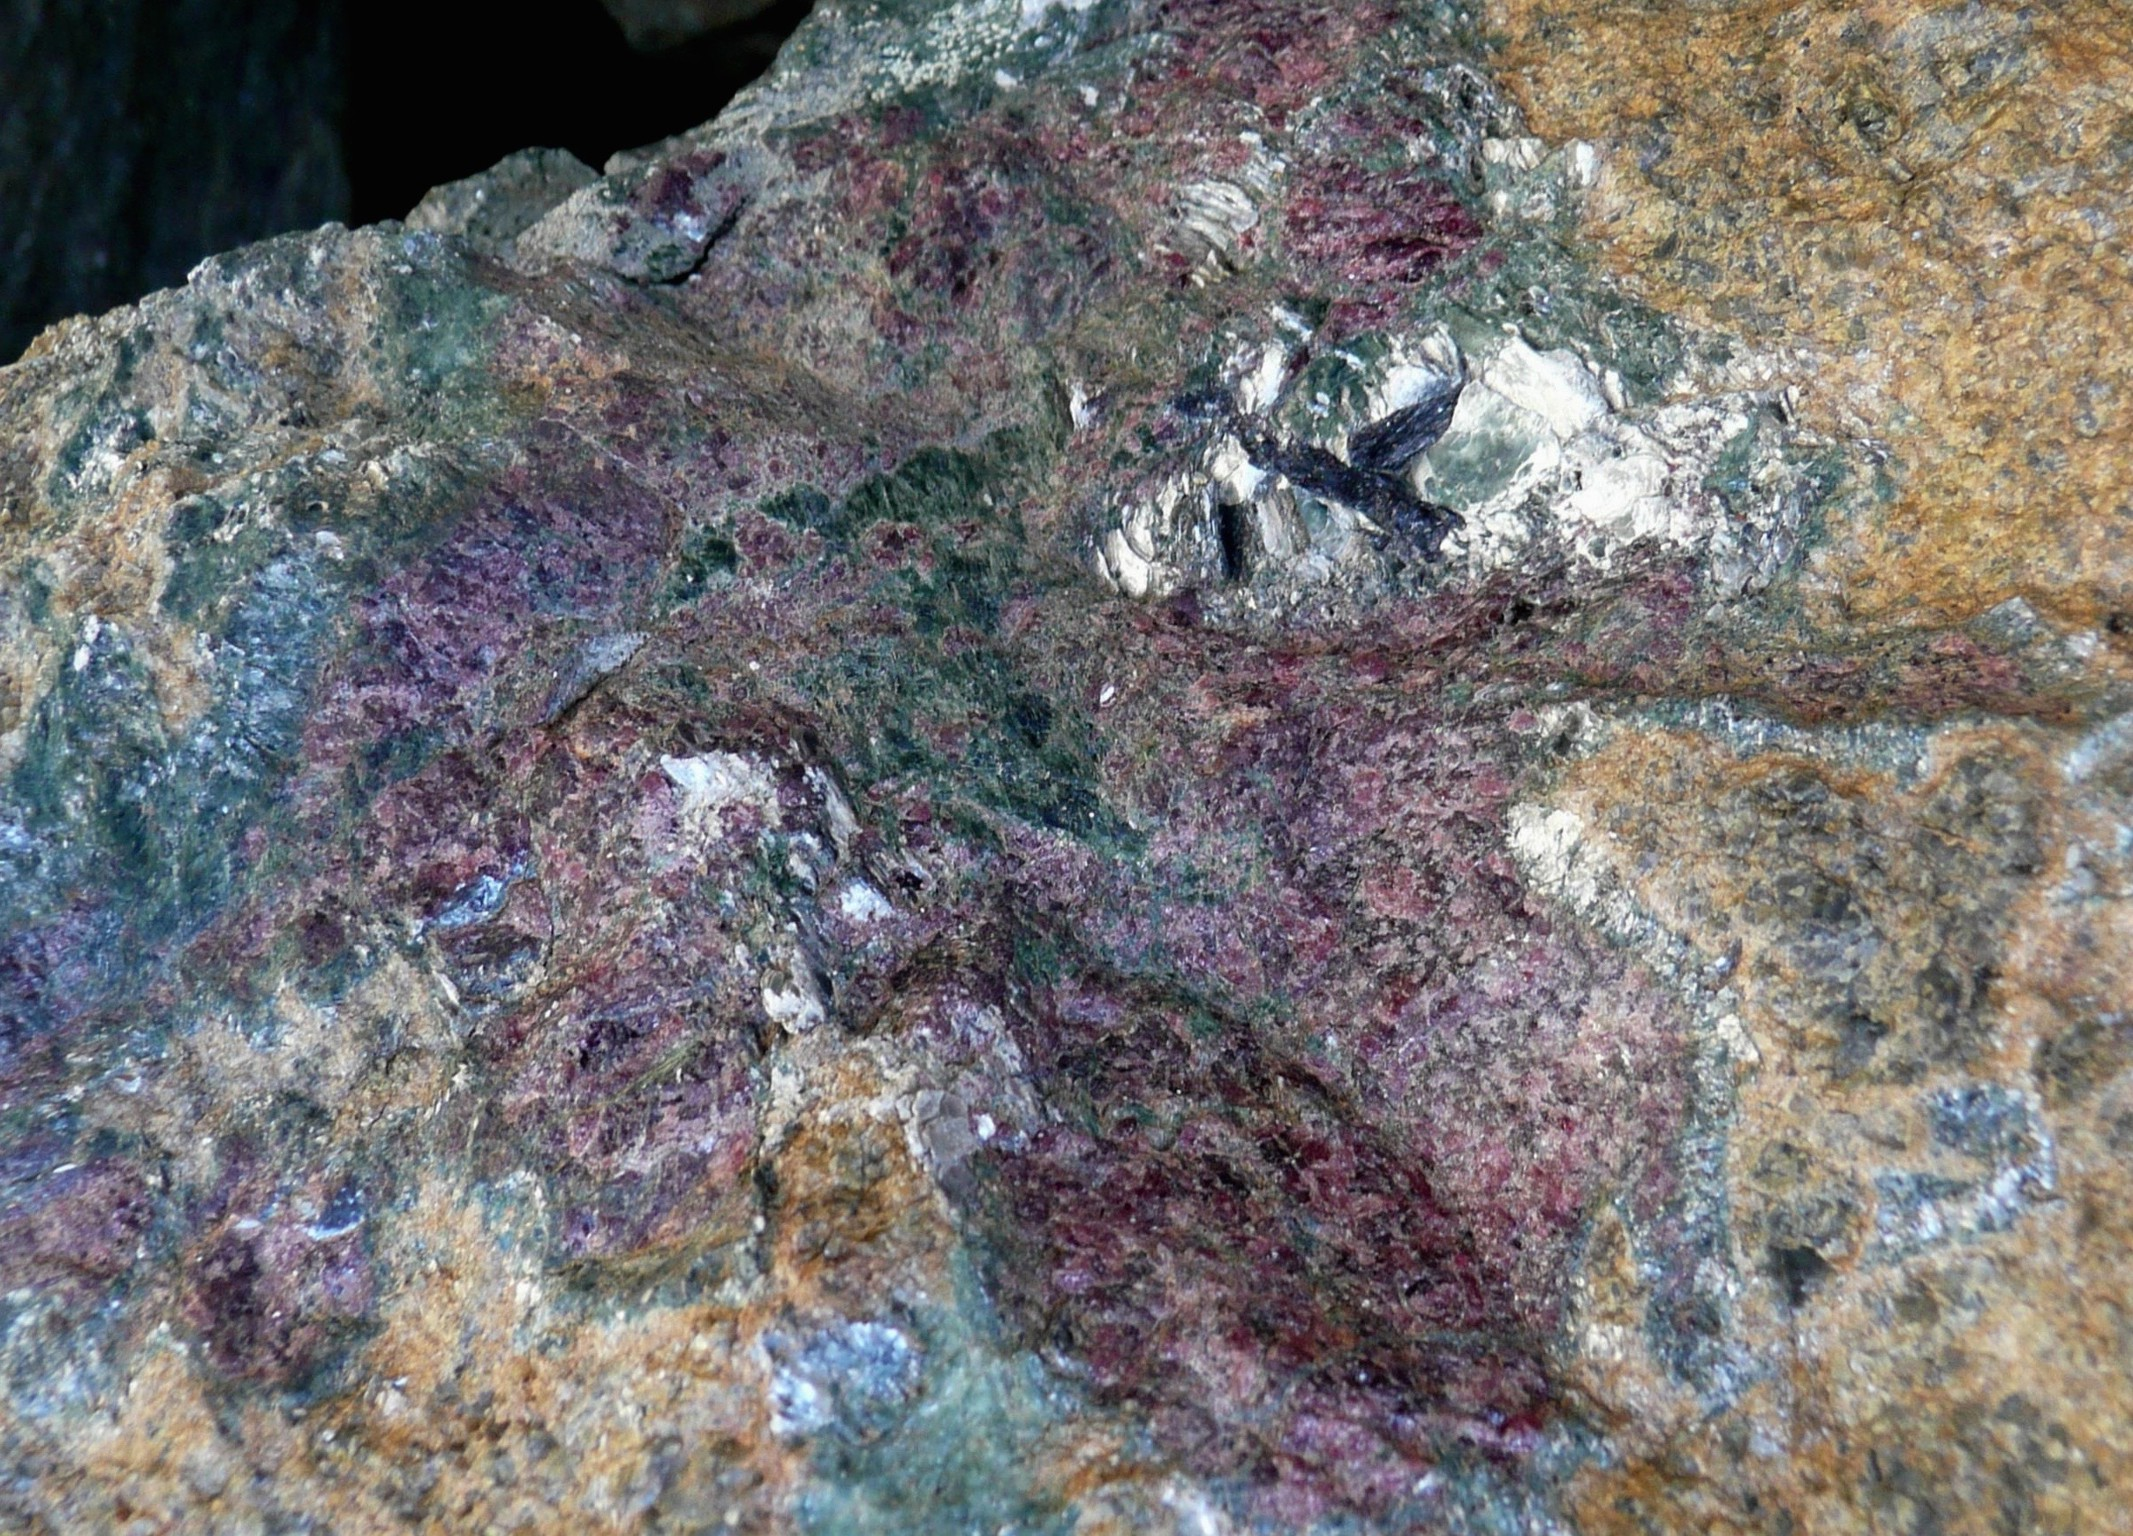 Garnet megablast (from circulating fluids) in de-serpentinzed garnet peridotite.